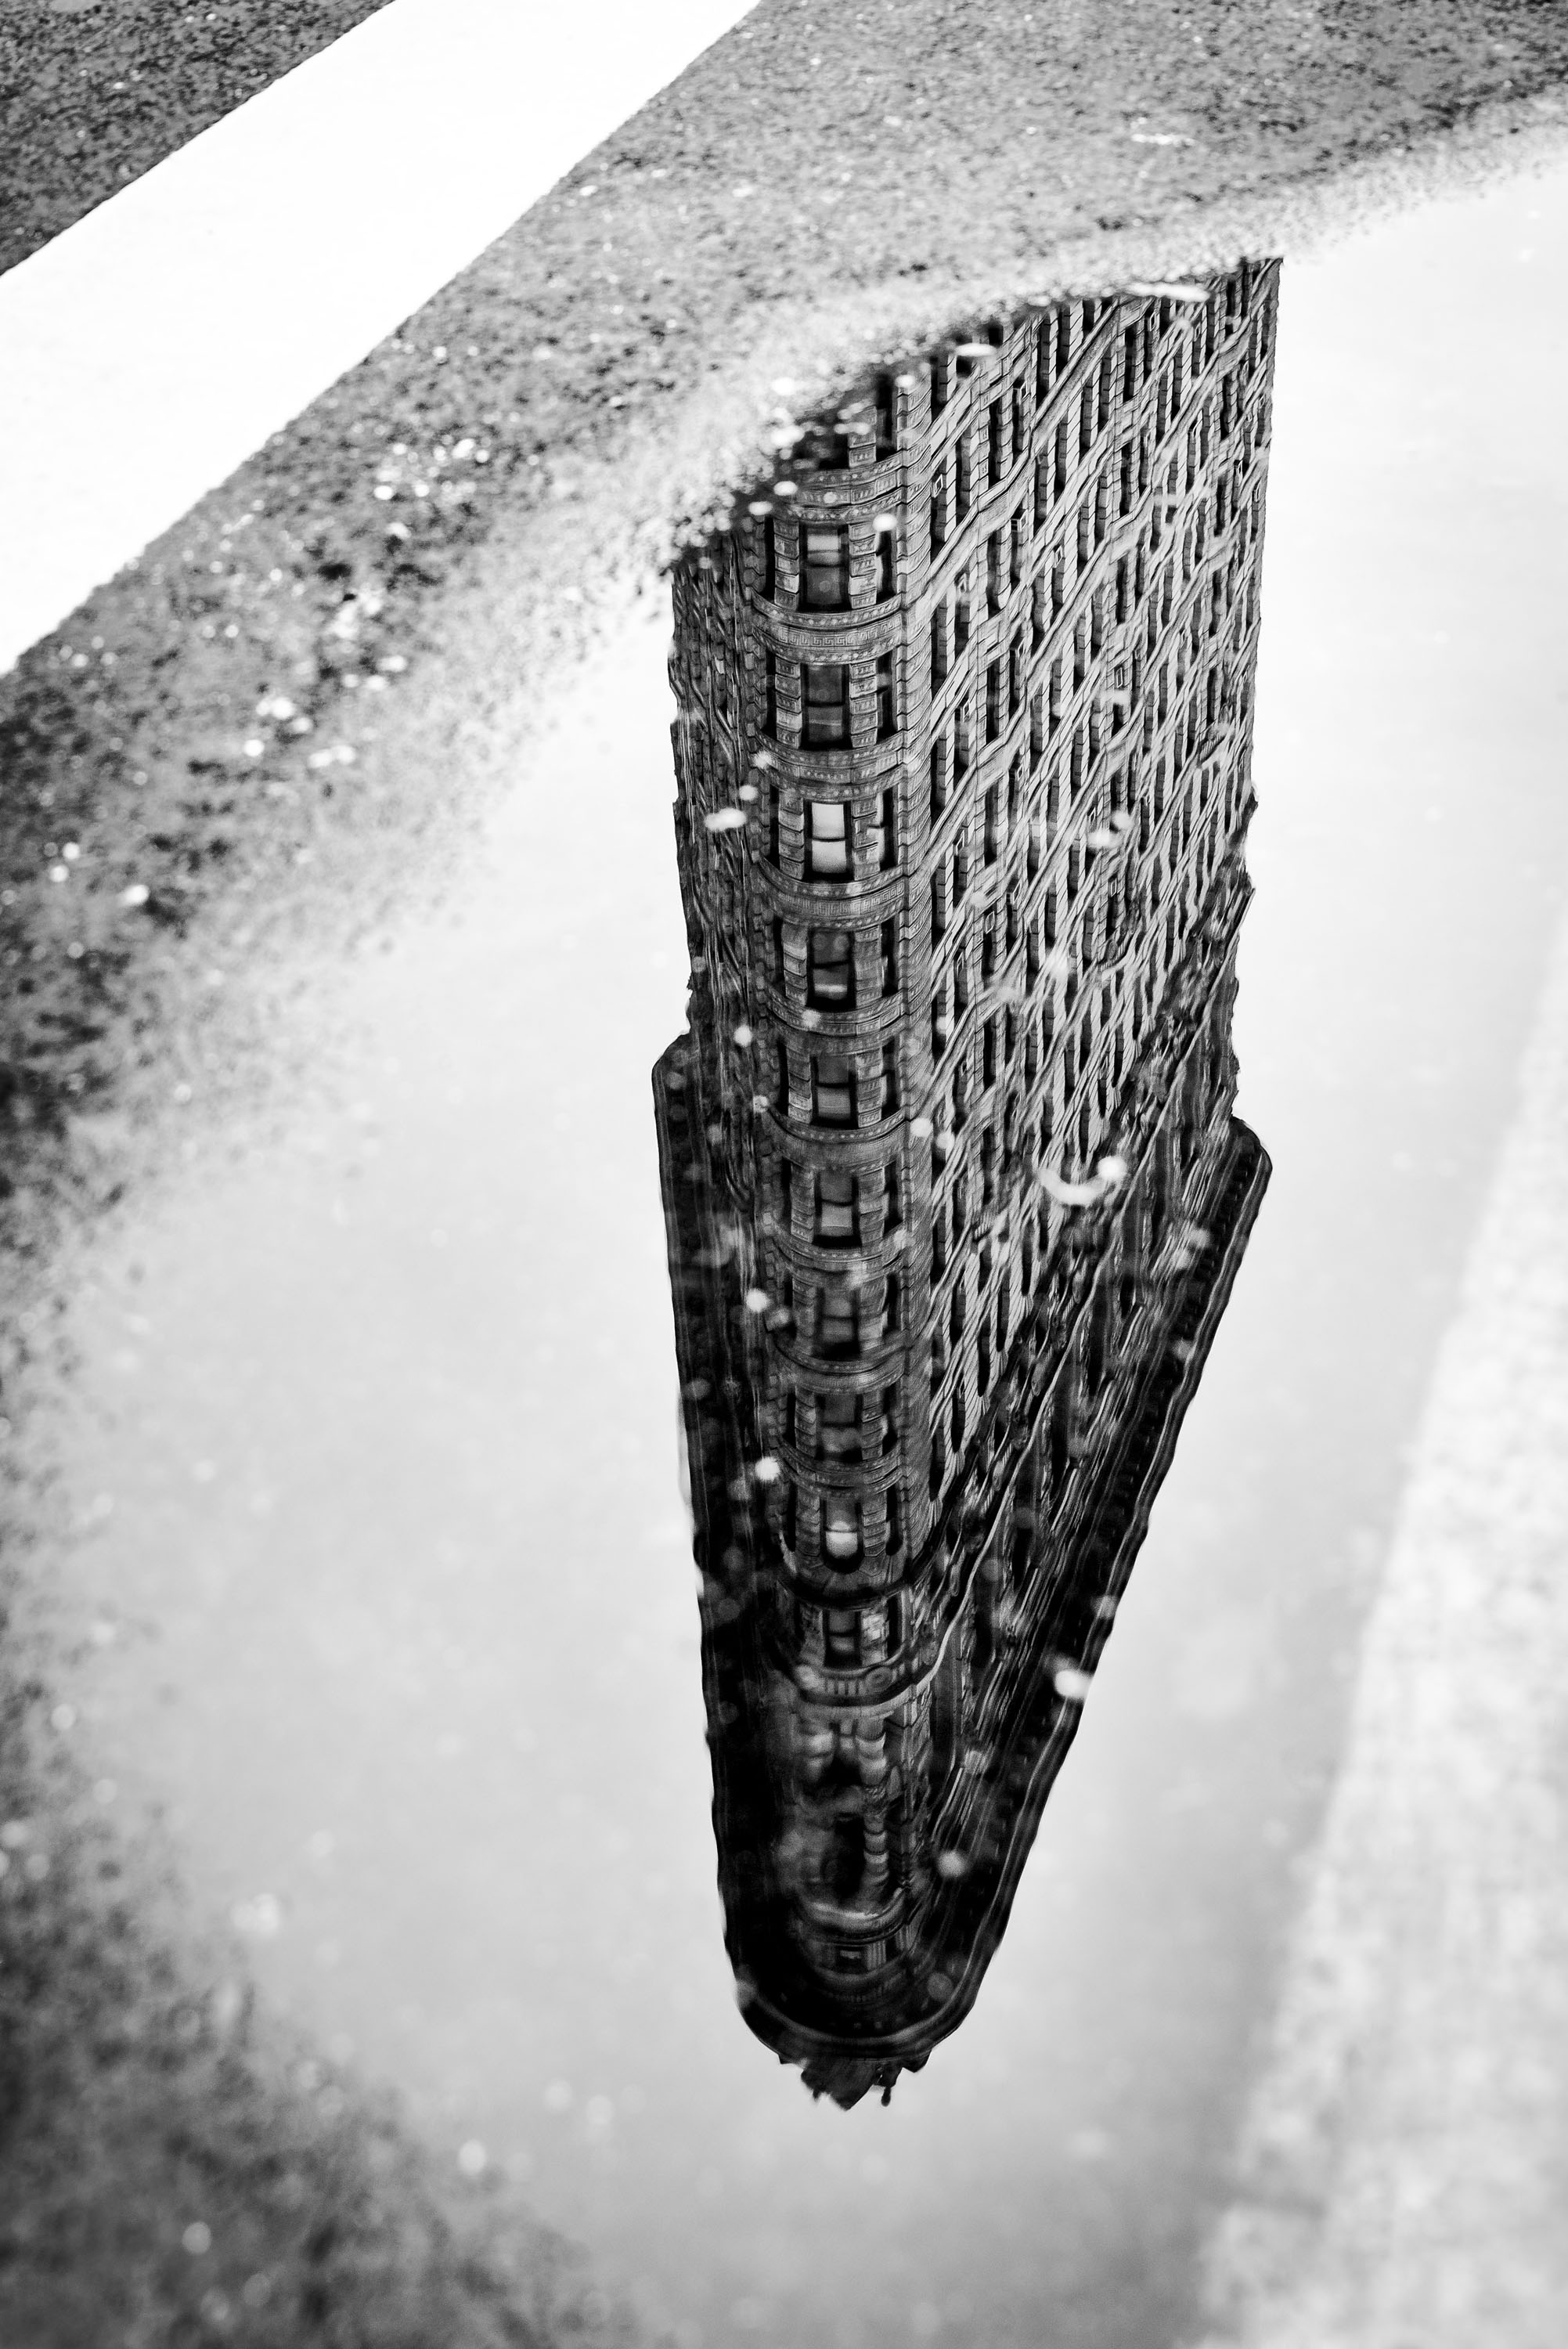 Flatiron Building, NYC - United States